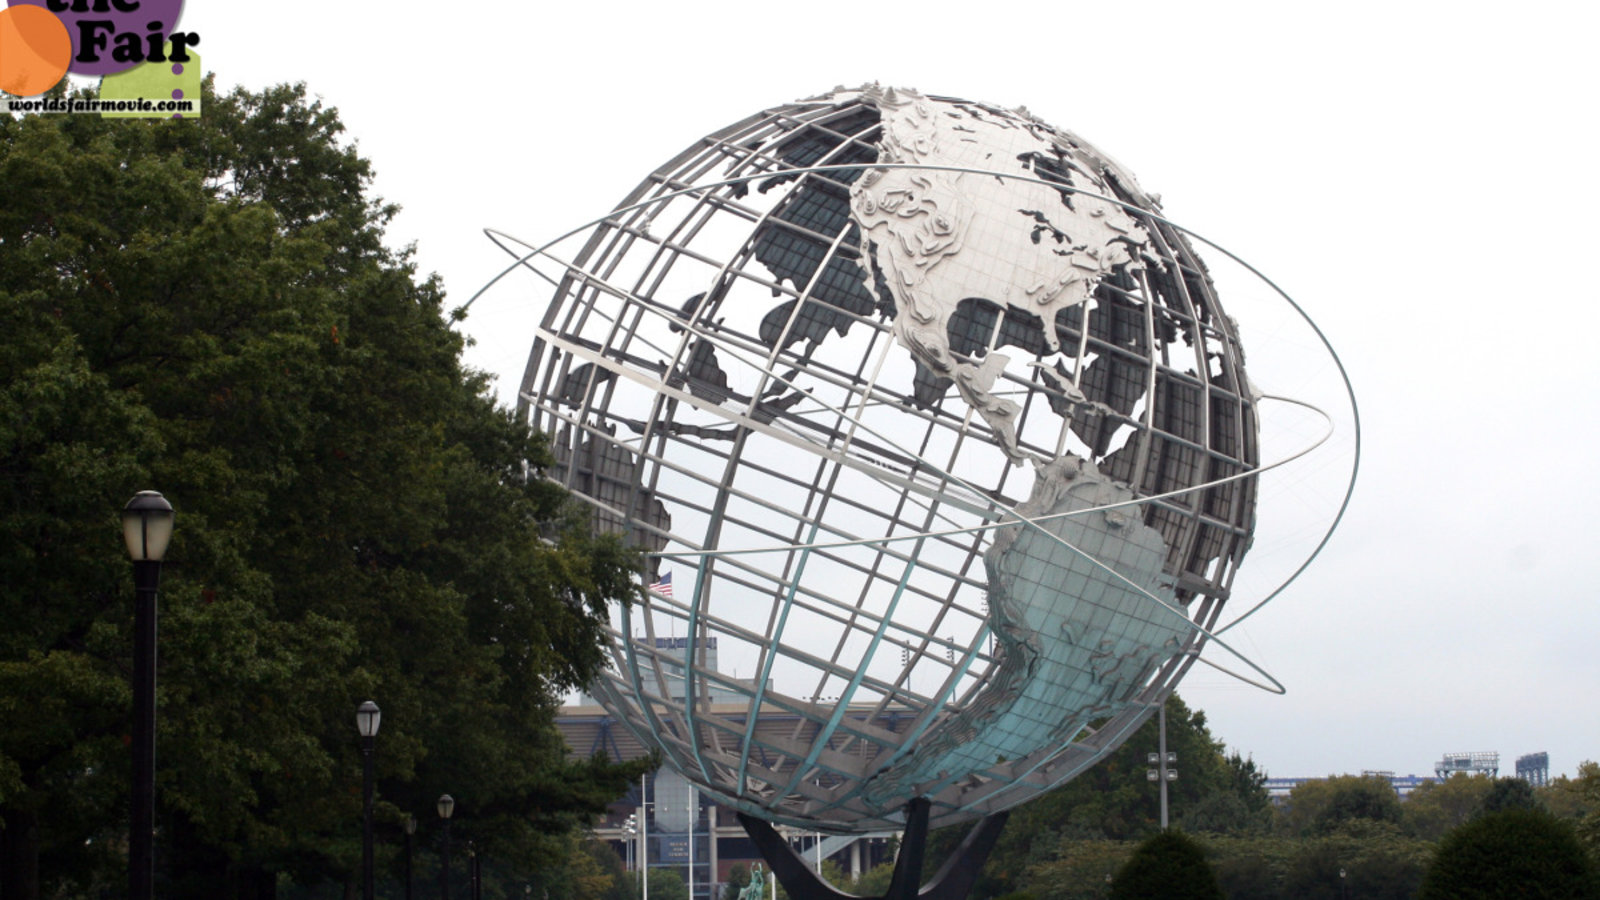 After The Fair - The Legacy of the 1964 World's Fair